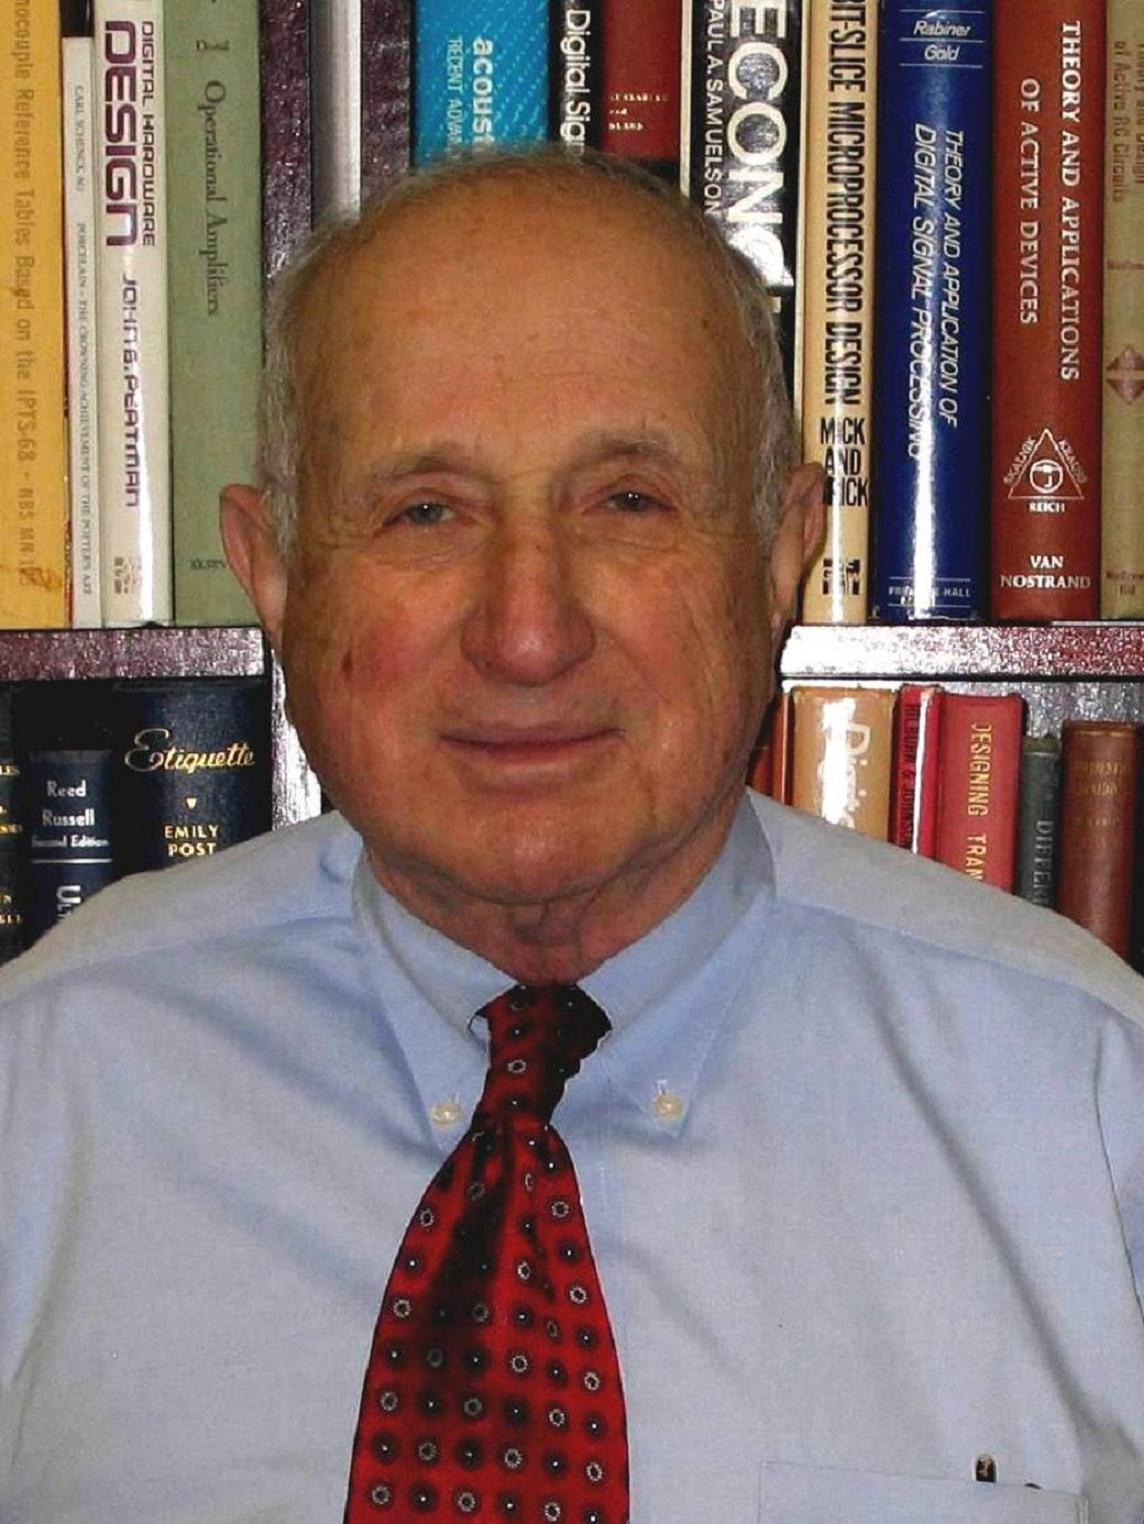 bernard m. gordon